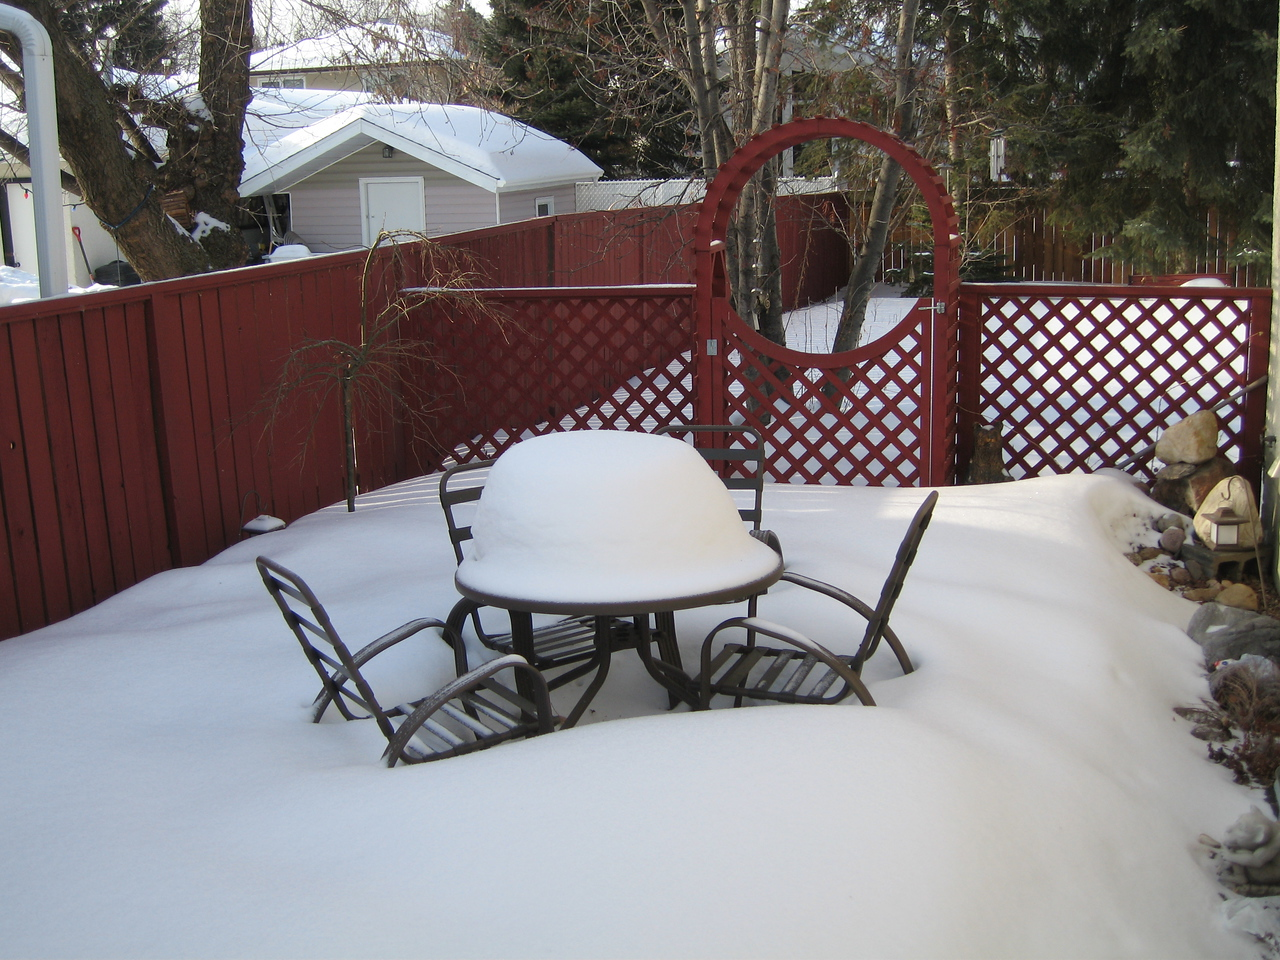 Don't think we will be sitting out for our morning coffee in the near future.